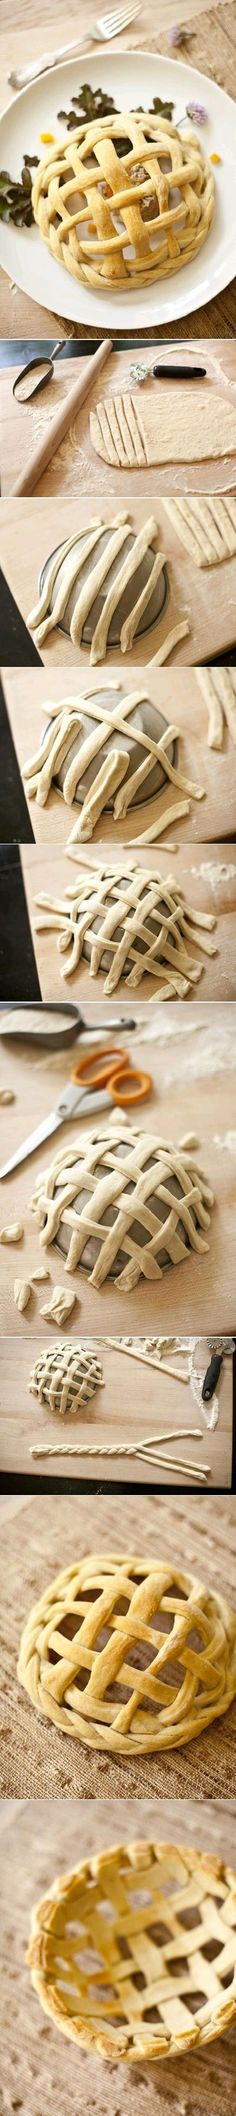 Pastry Basket -make mini versions with jumbo muffin tins and serve over a baked apple filled with a scoop of ice cream